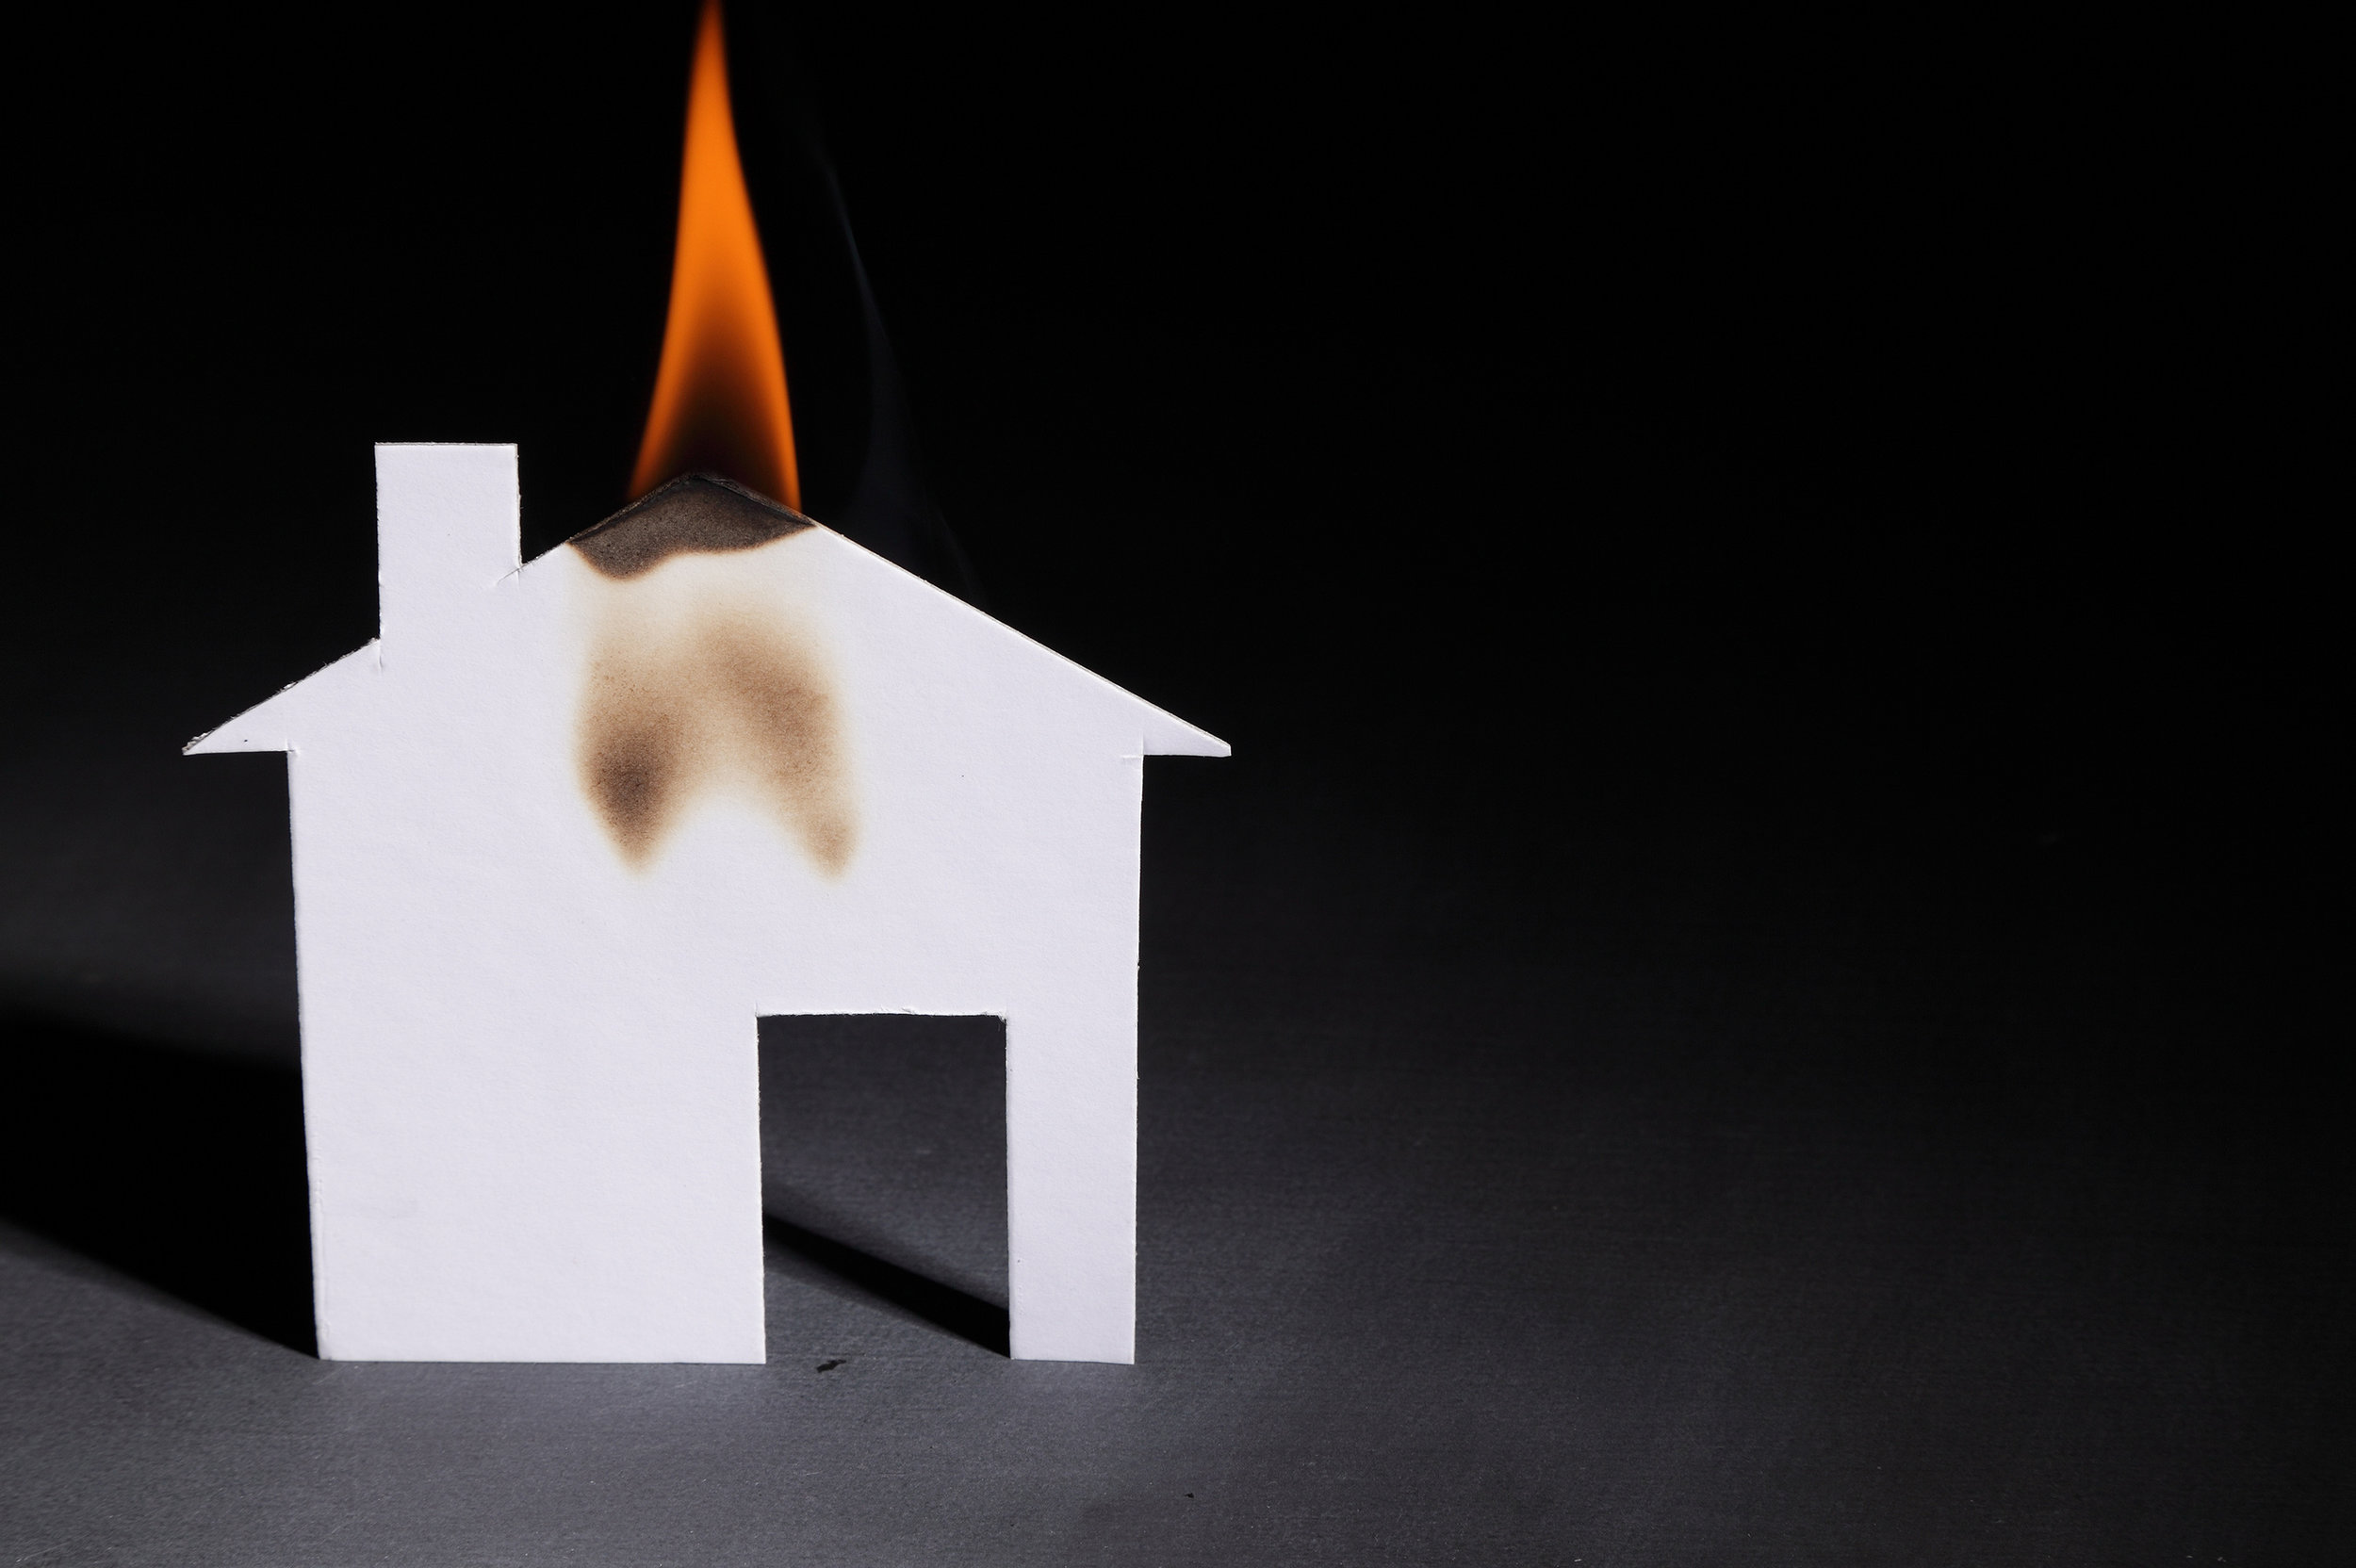 Residential fires occur every 76 seconds in the US.  – National Fire Protection Association